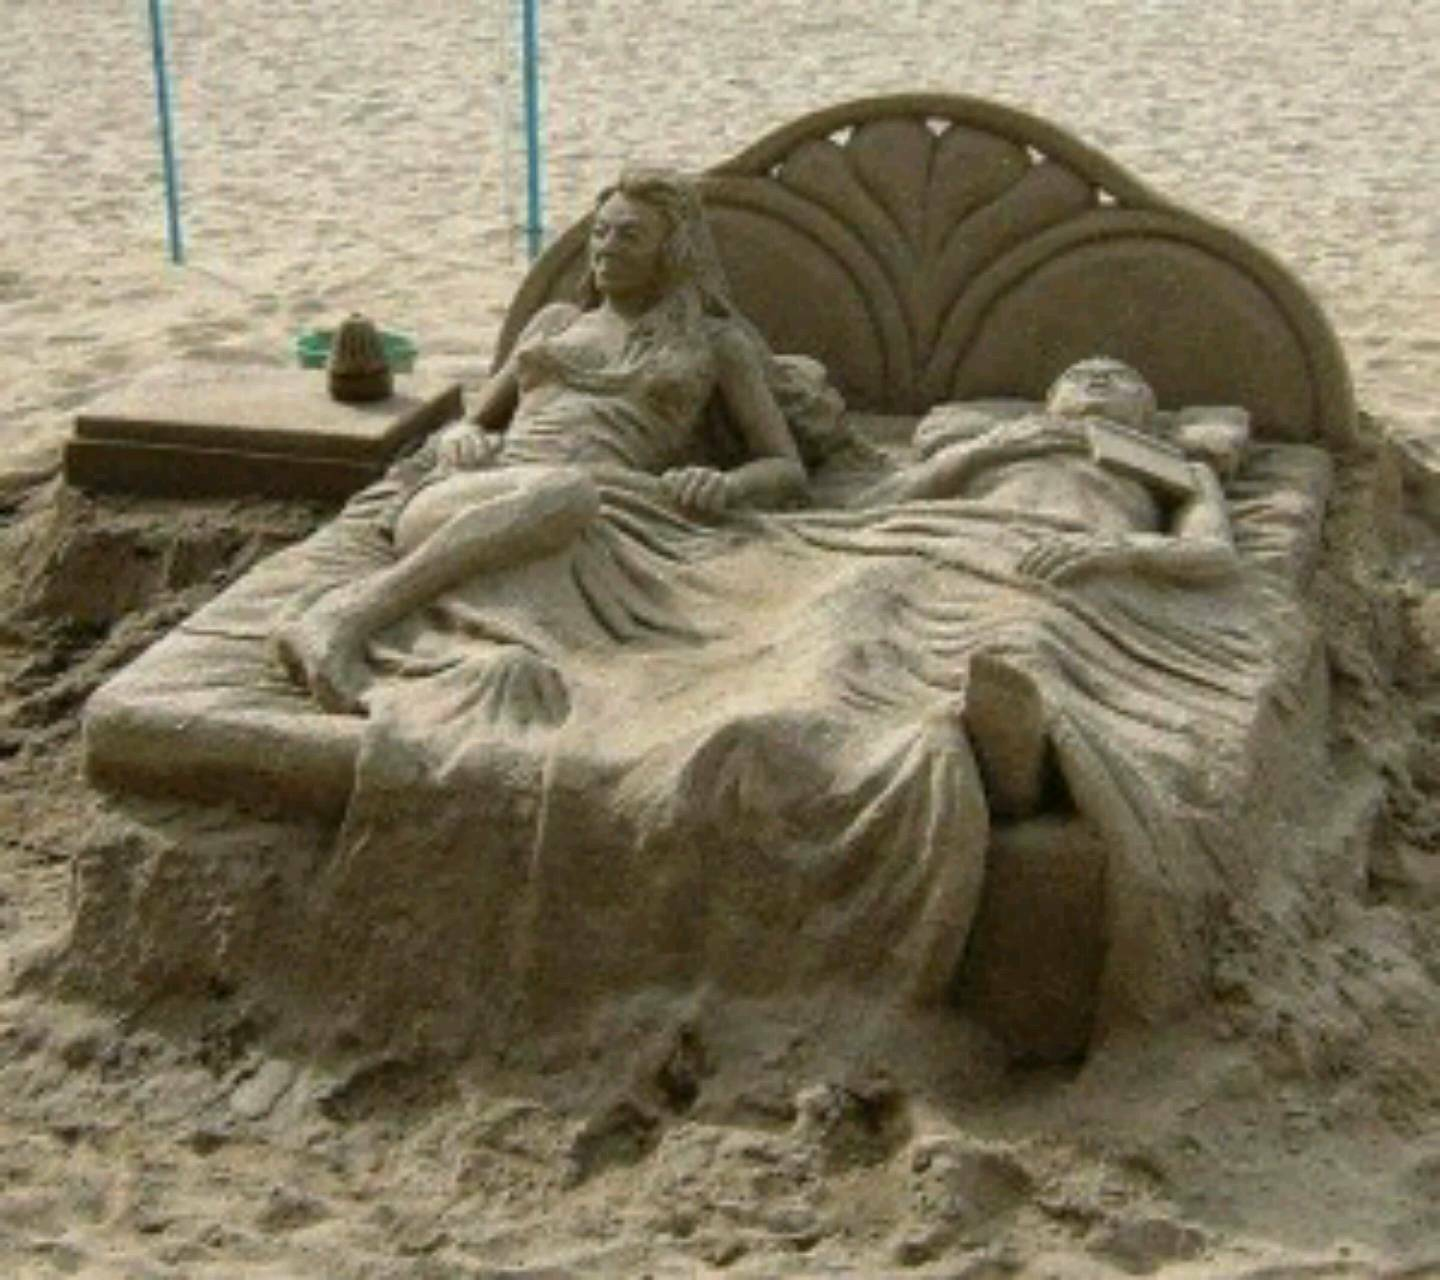 sand cassetle bed